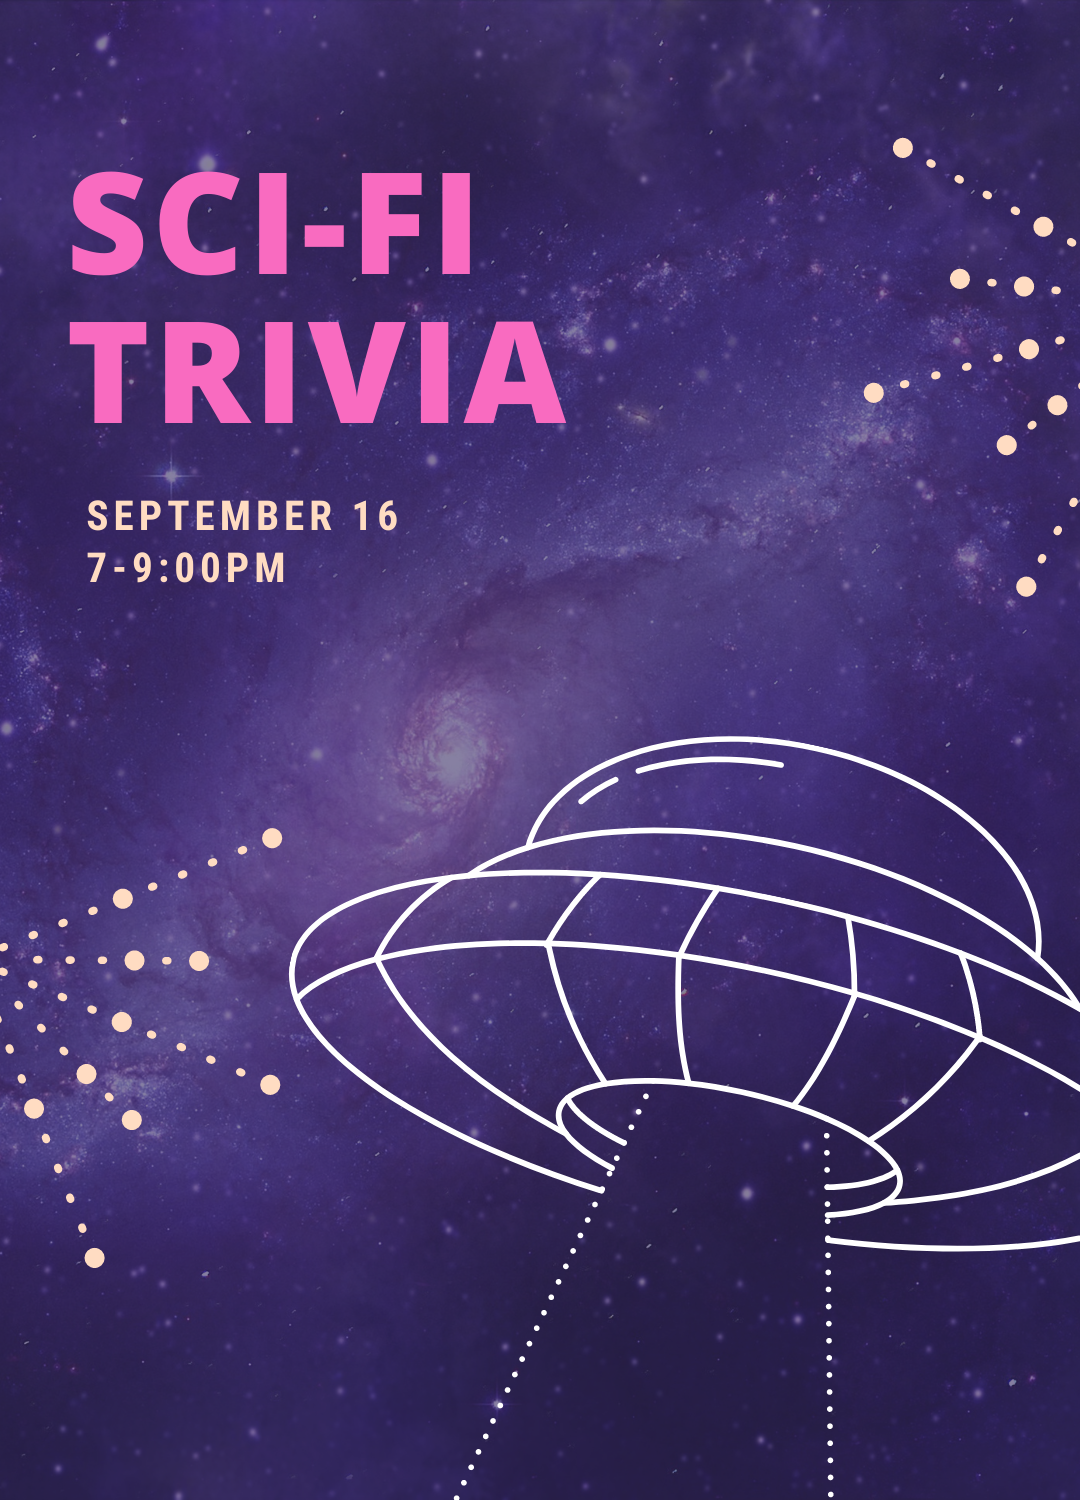 Poster for Sci-Fi Trivia